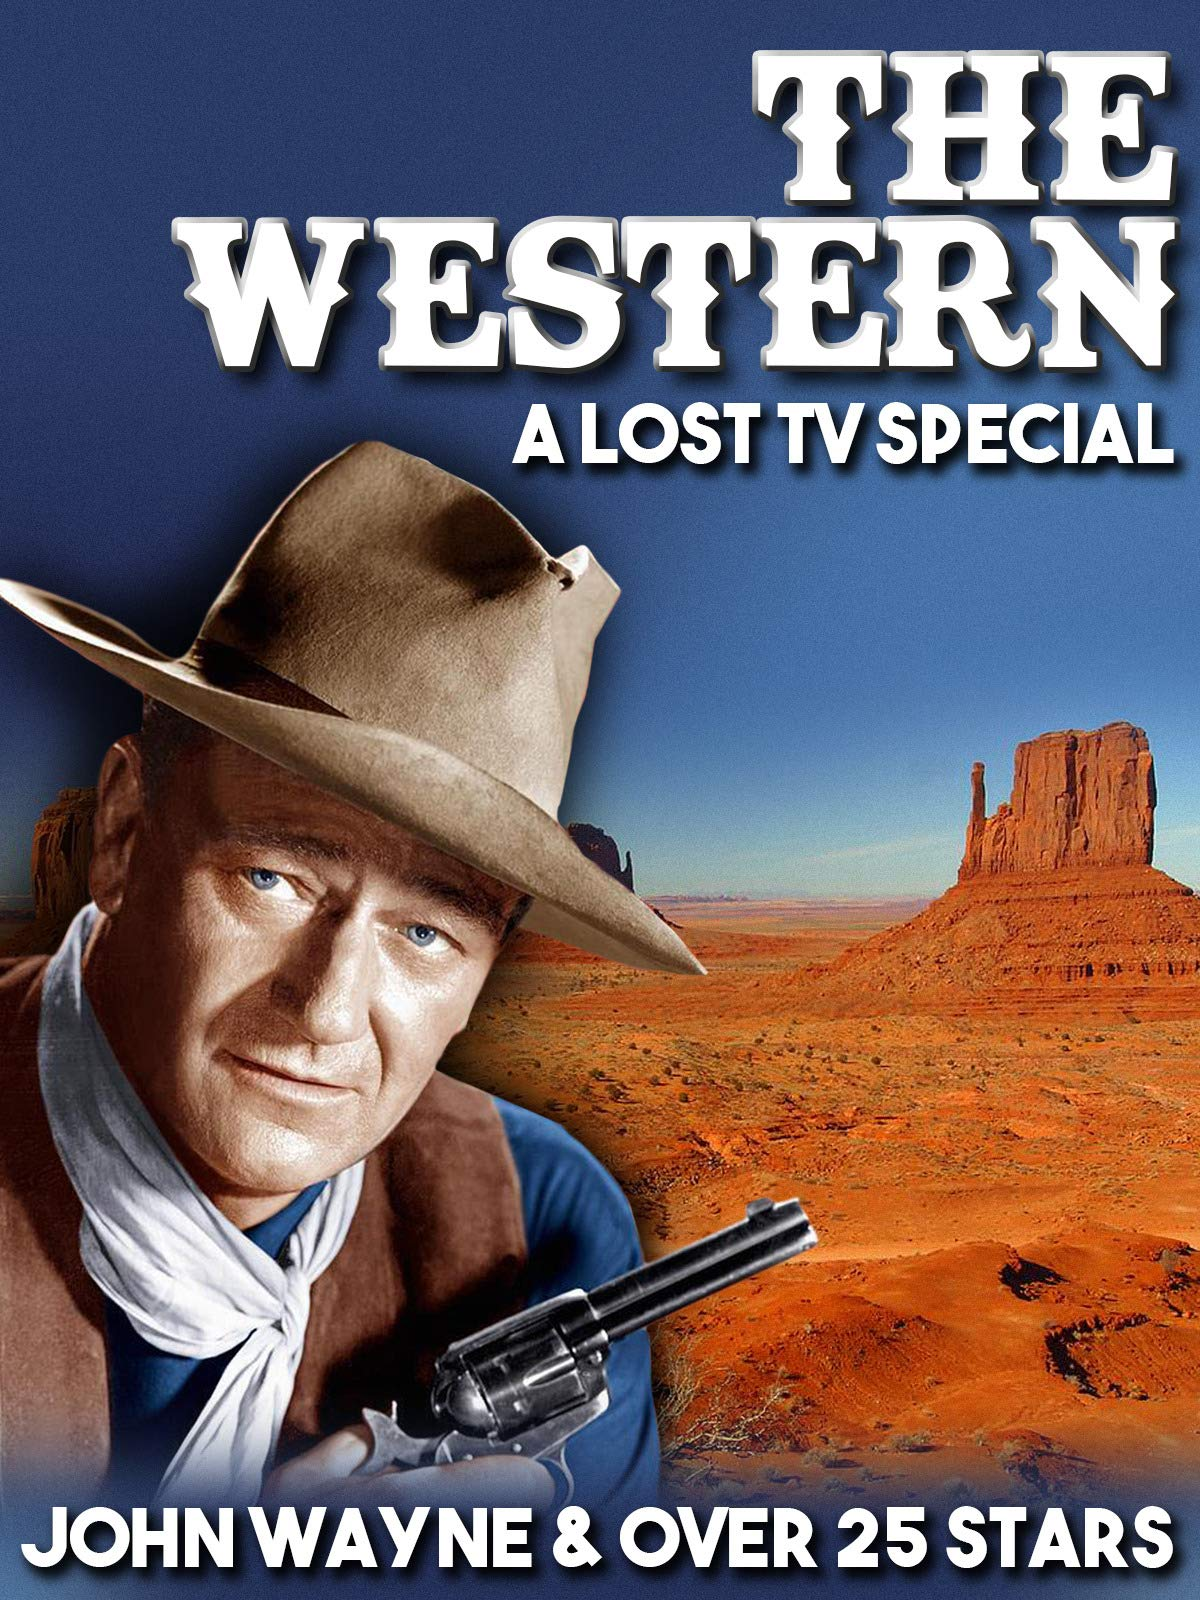 The Western - A Lost TV Special - John Wayne & Over 25 Stars on Amazon Prime Video UK